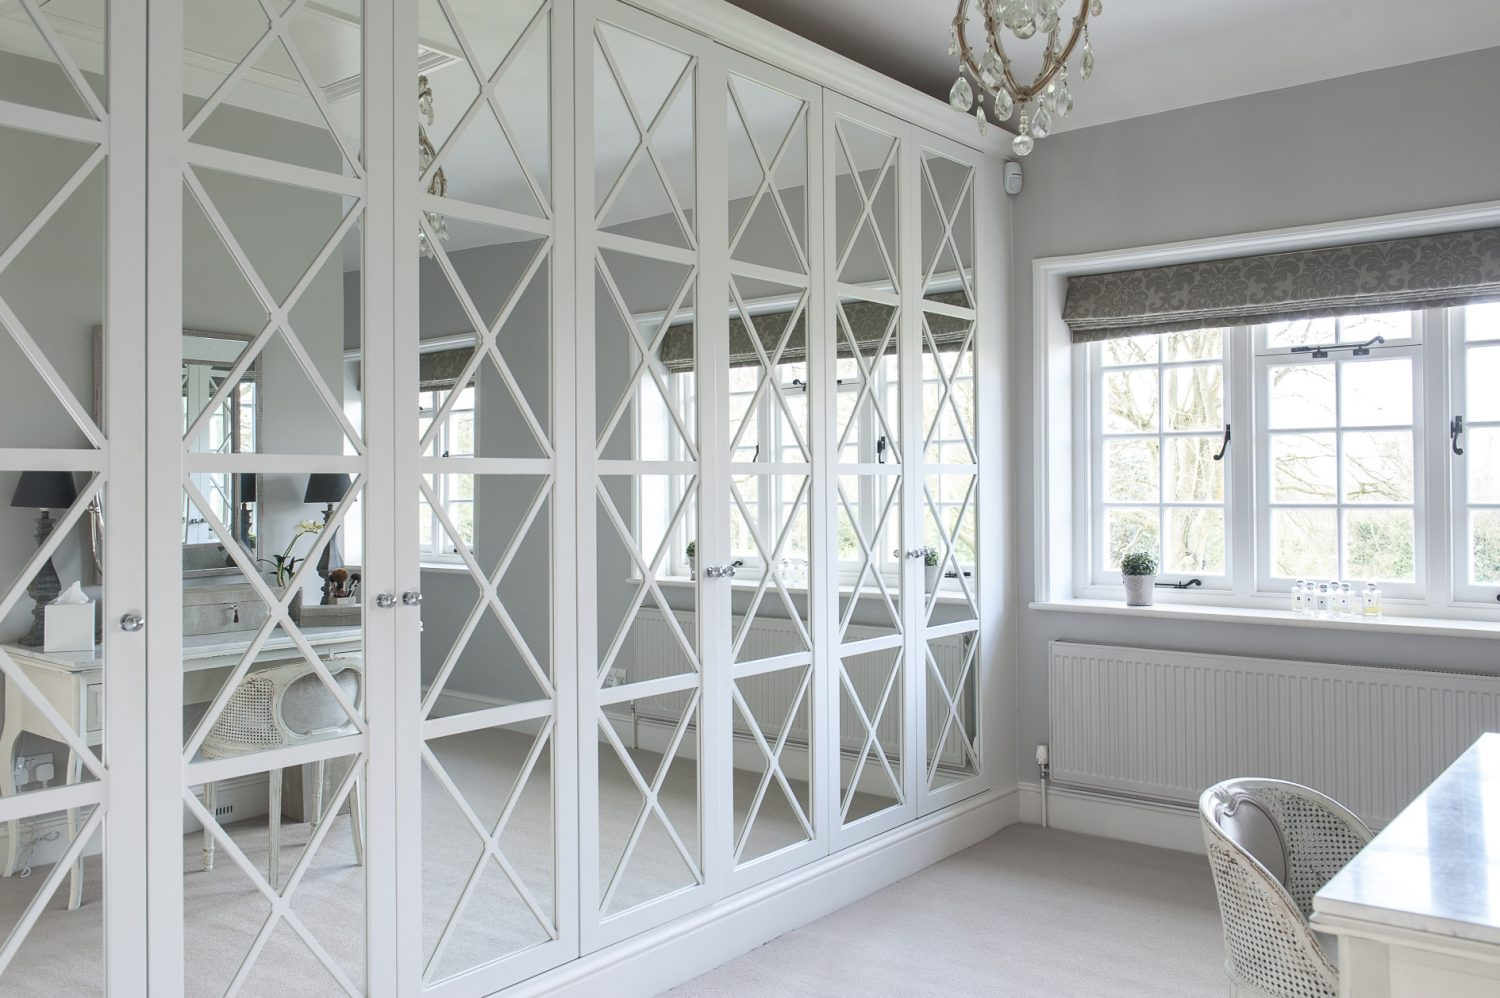 A wall of bespoke wardrobes with mirrored and lattice-work doors in the dressing room was beautifully crafted by the couple's carpenter, Robert and fits perfectly with the property's 20th century, Arts & Crafts aesthetic. Hiding any clutter, they are also eminently functional too